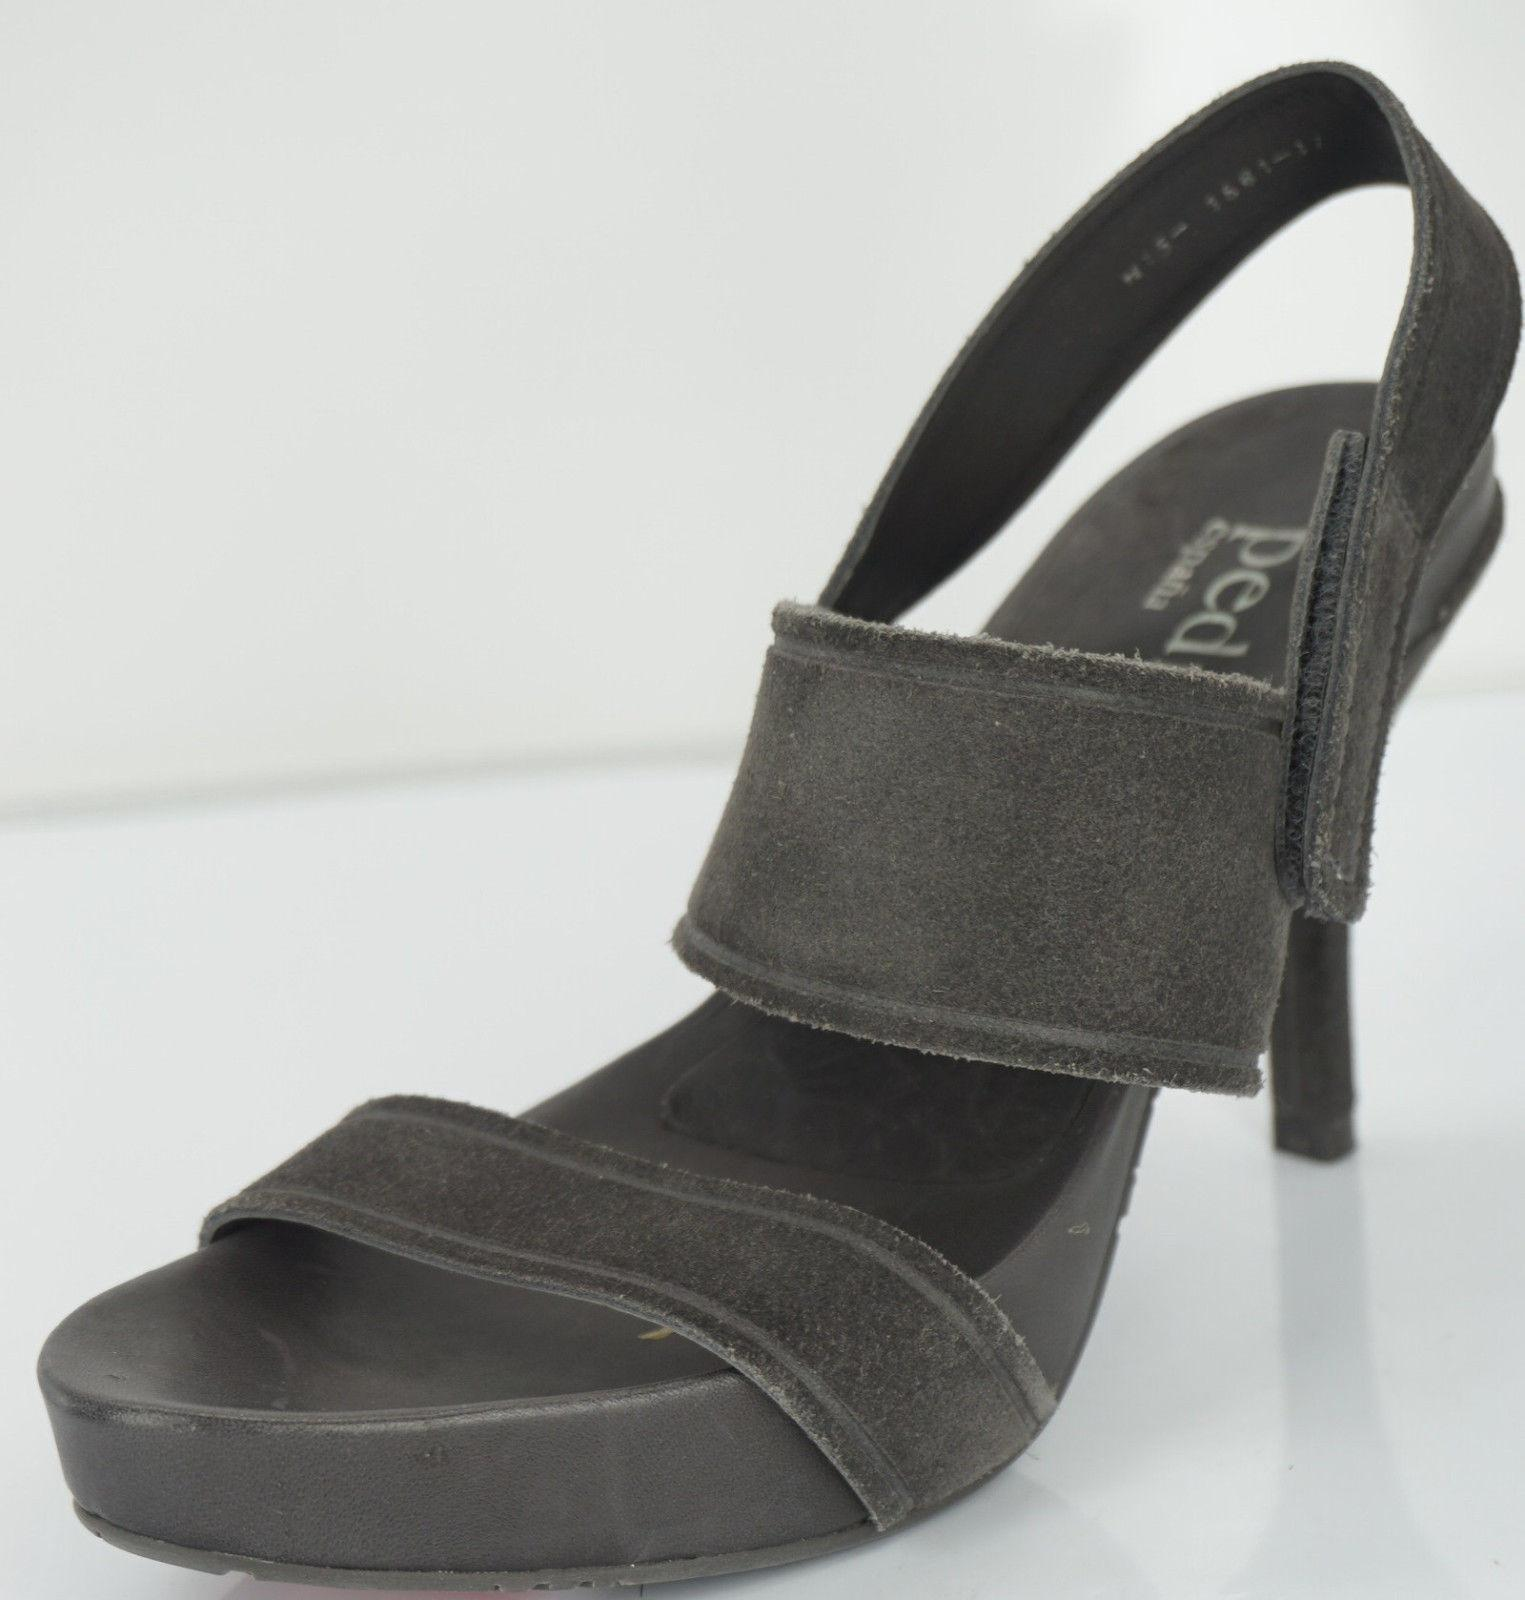 Pedro Garcia Suede Ankle-Strap Sandals discount footlocker pictures clearance fashionable outlet find great limited edition yXKrO